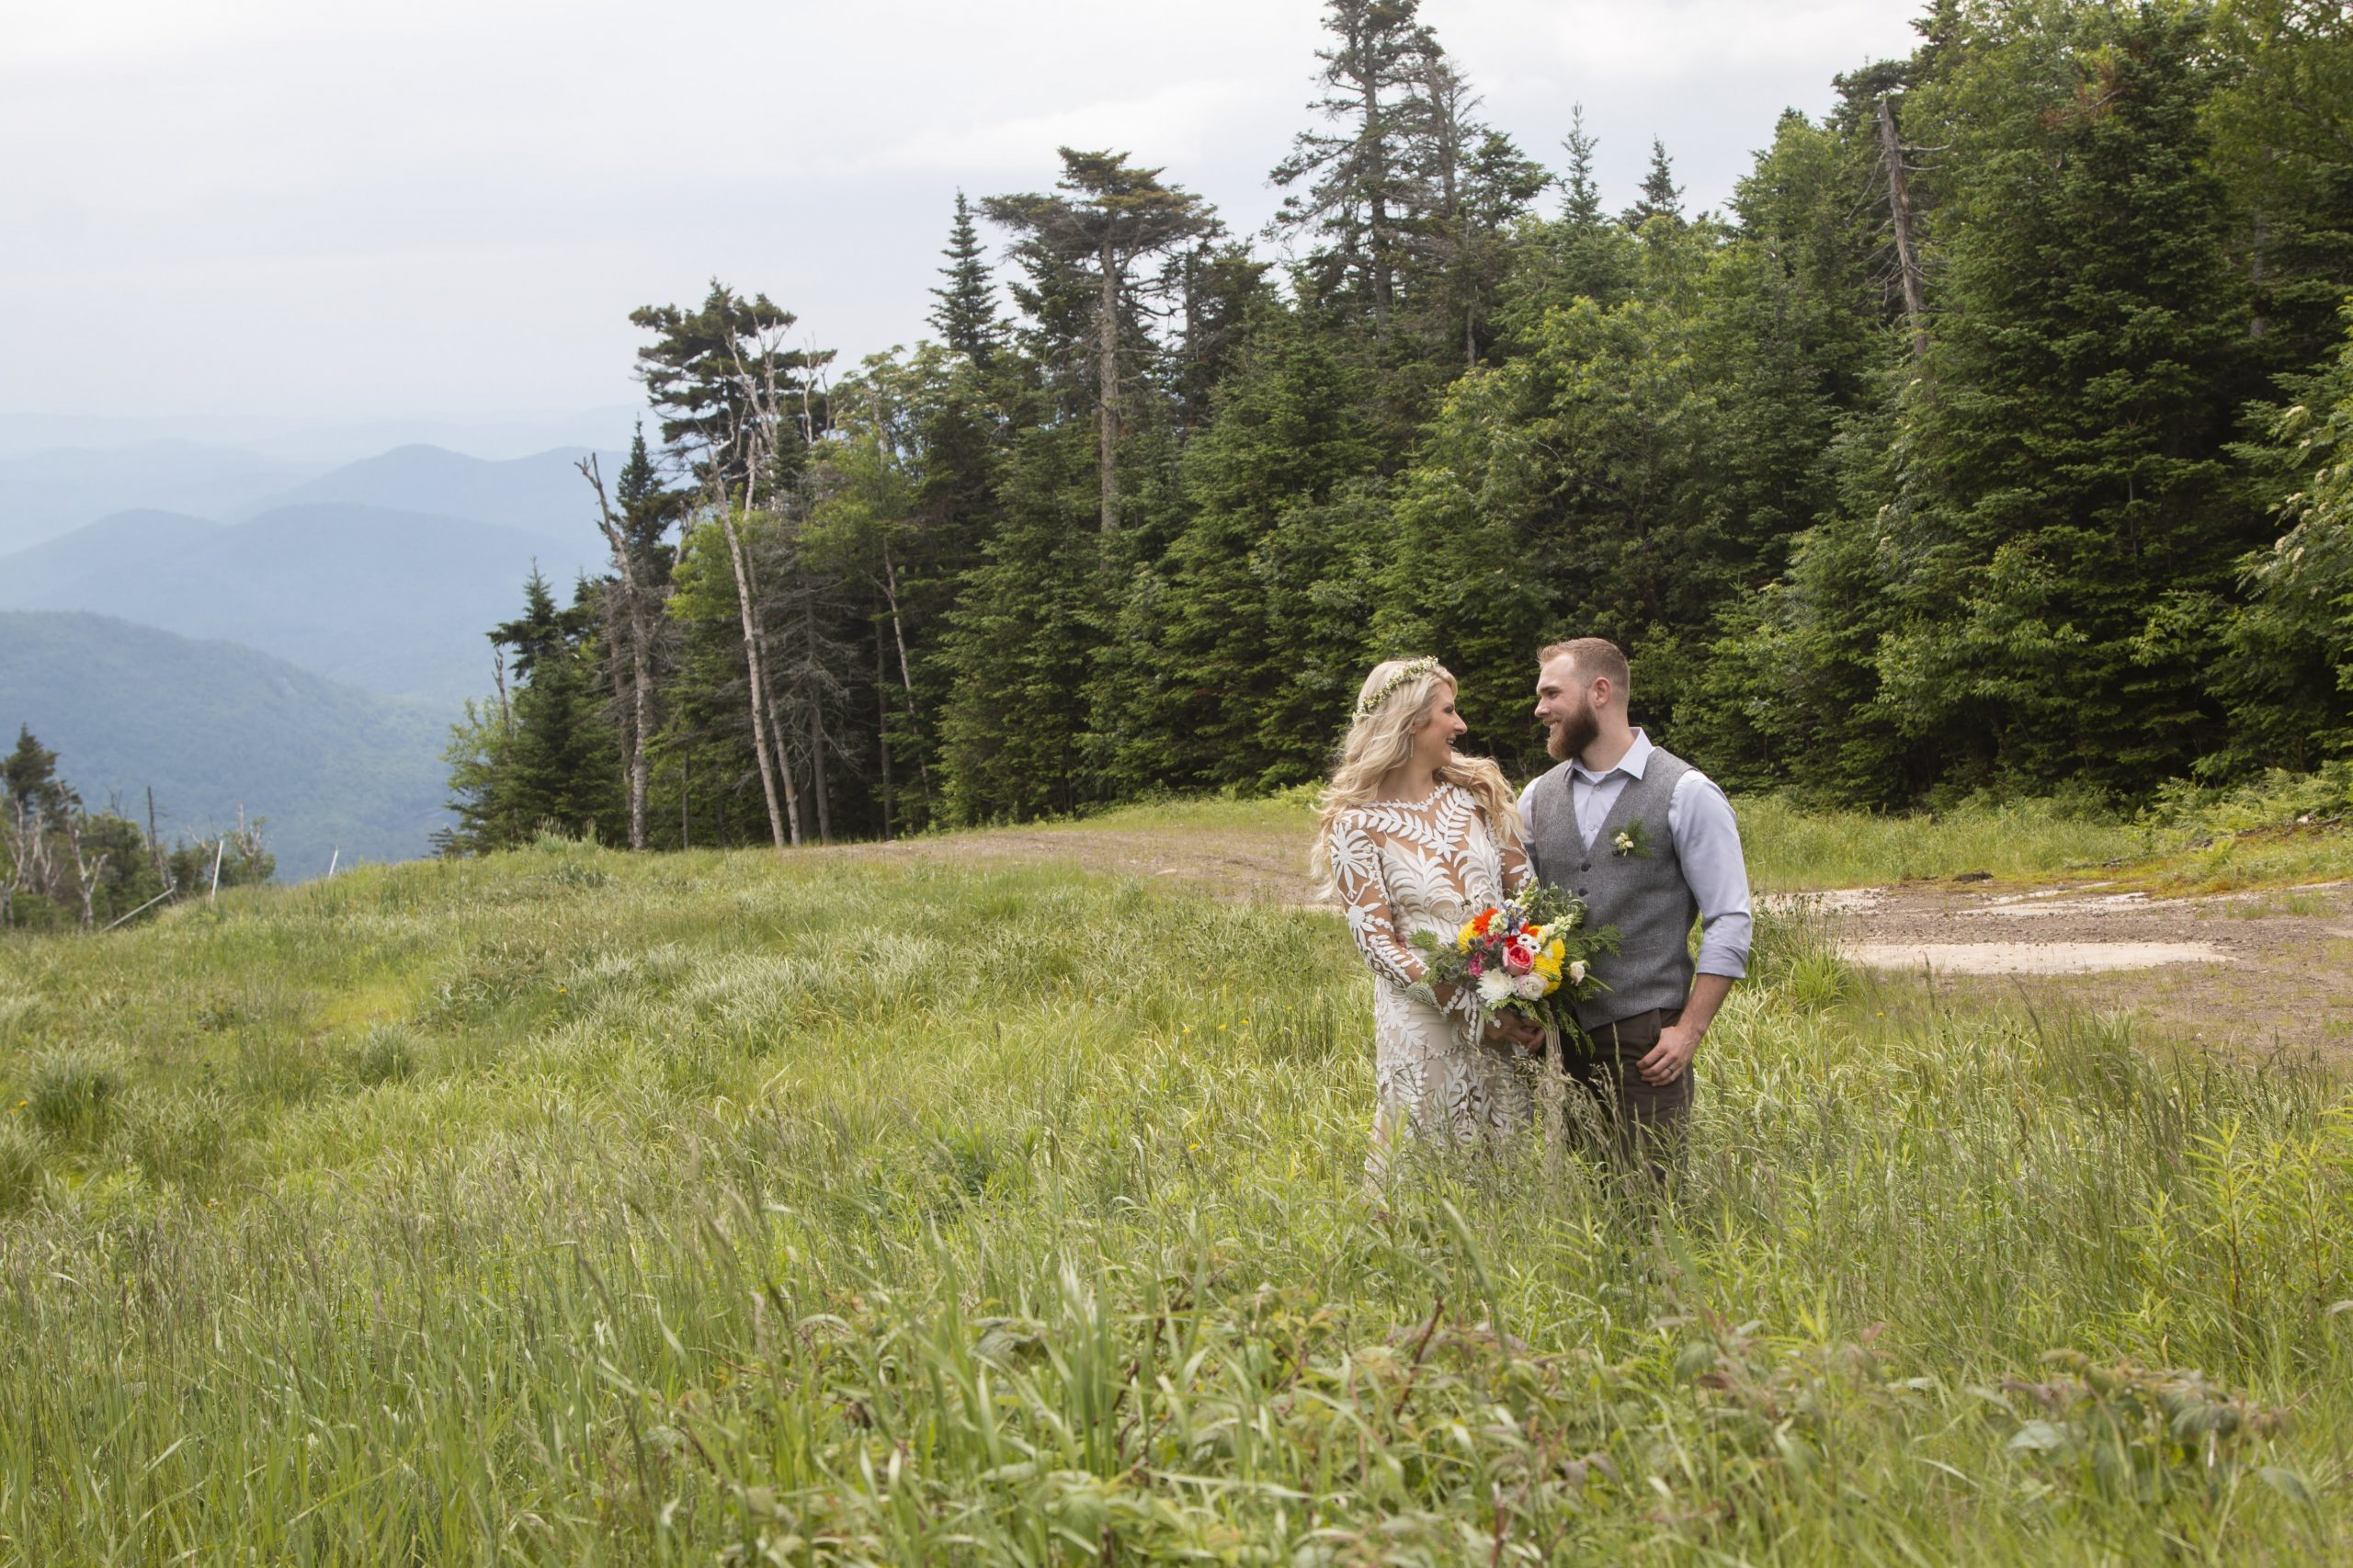 Wedding Couple Surrounded by Nature